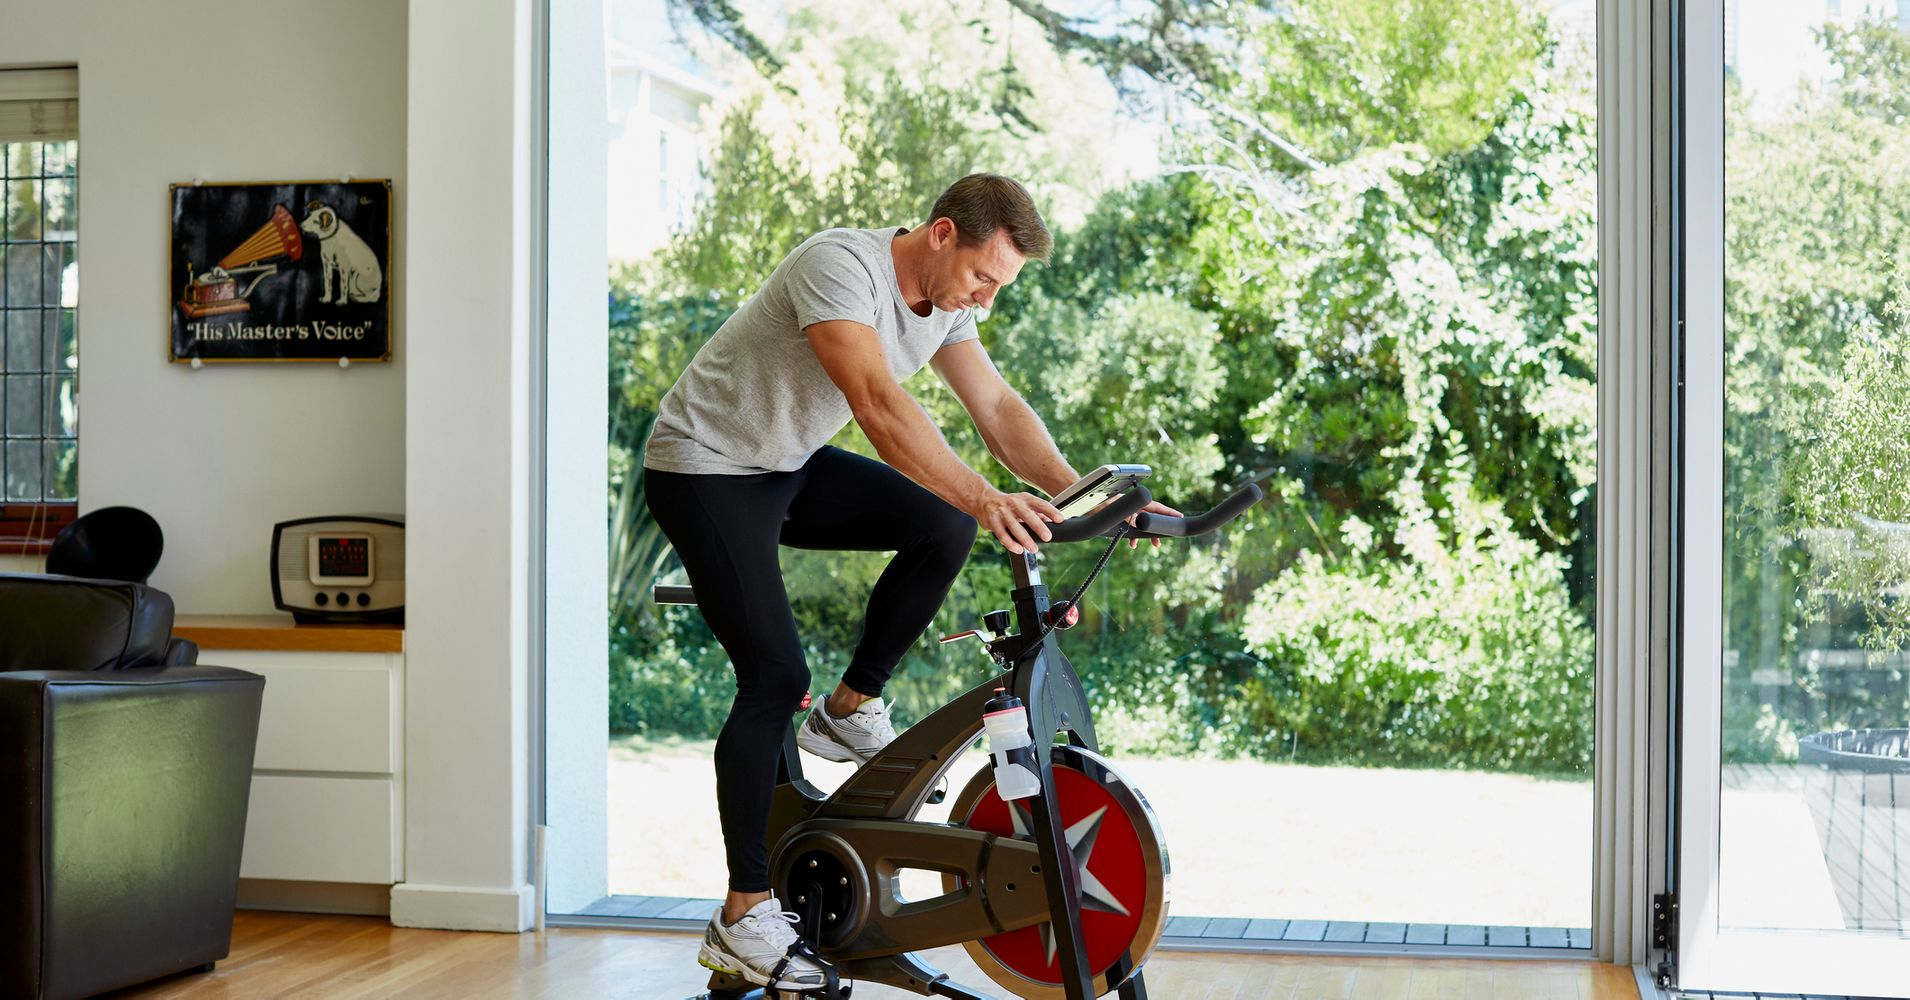 The Best Way to Buy a Used Peloton Bike | HuffPost